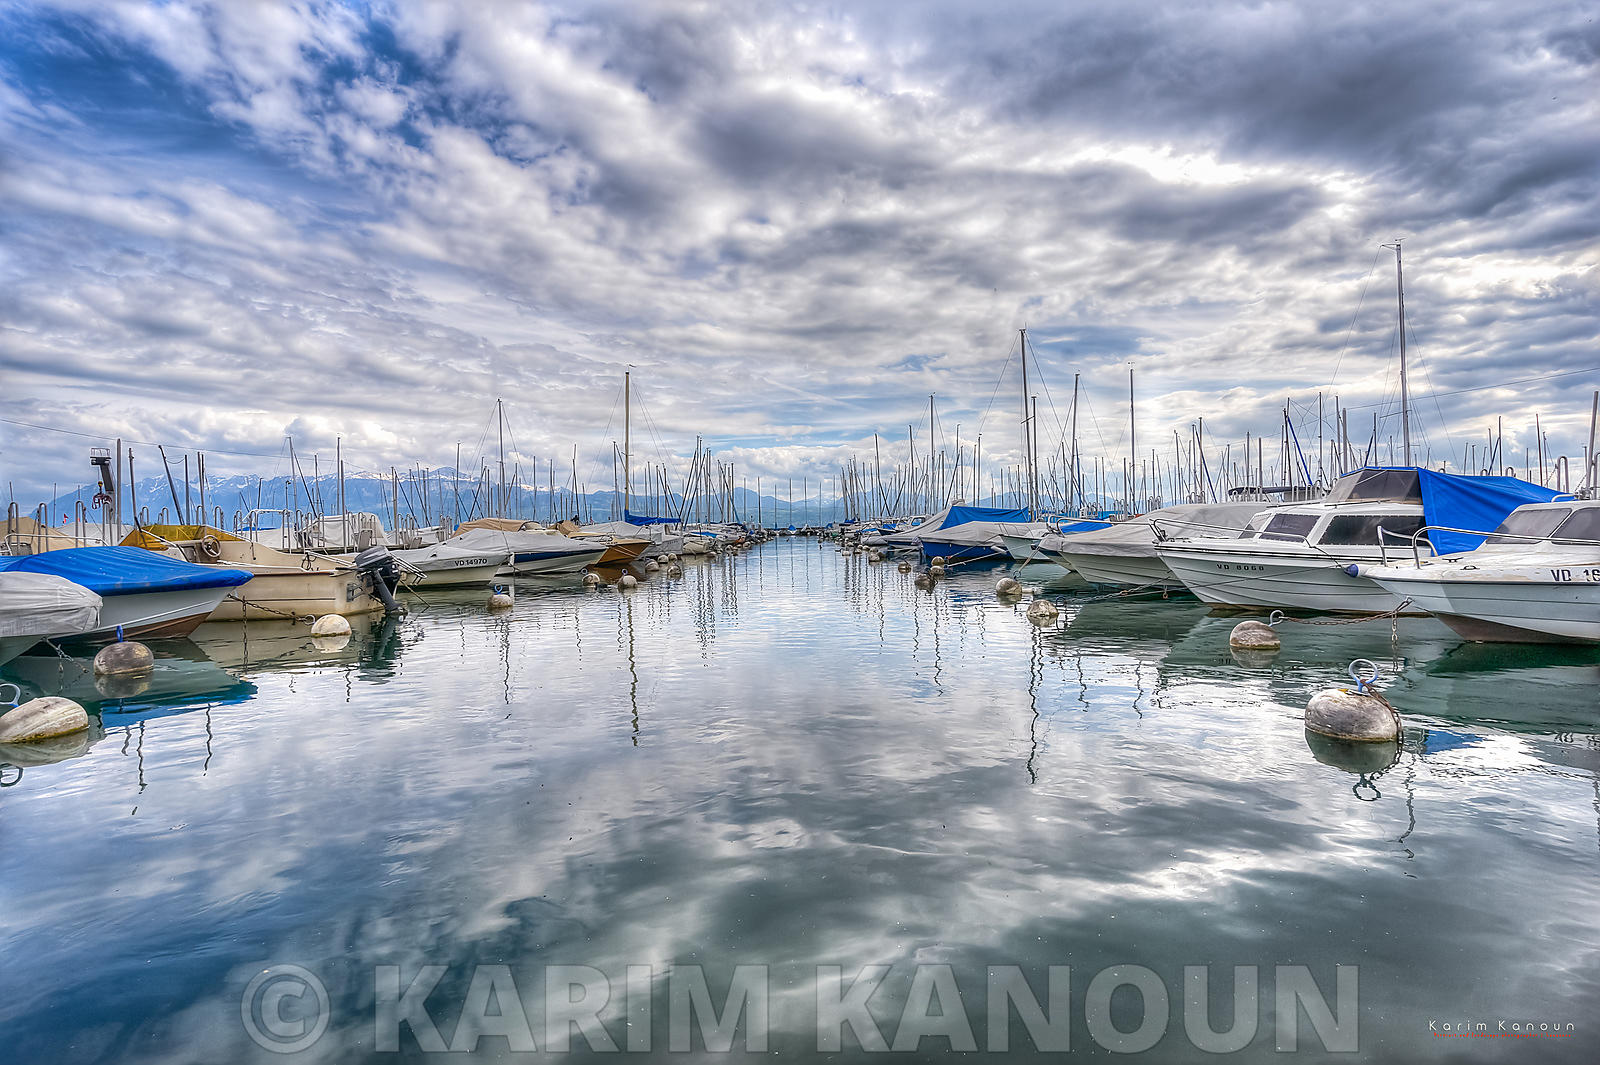 Daramatic sky reflection with boats in the middle - Vidy, Lausanne